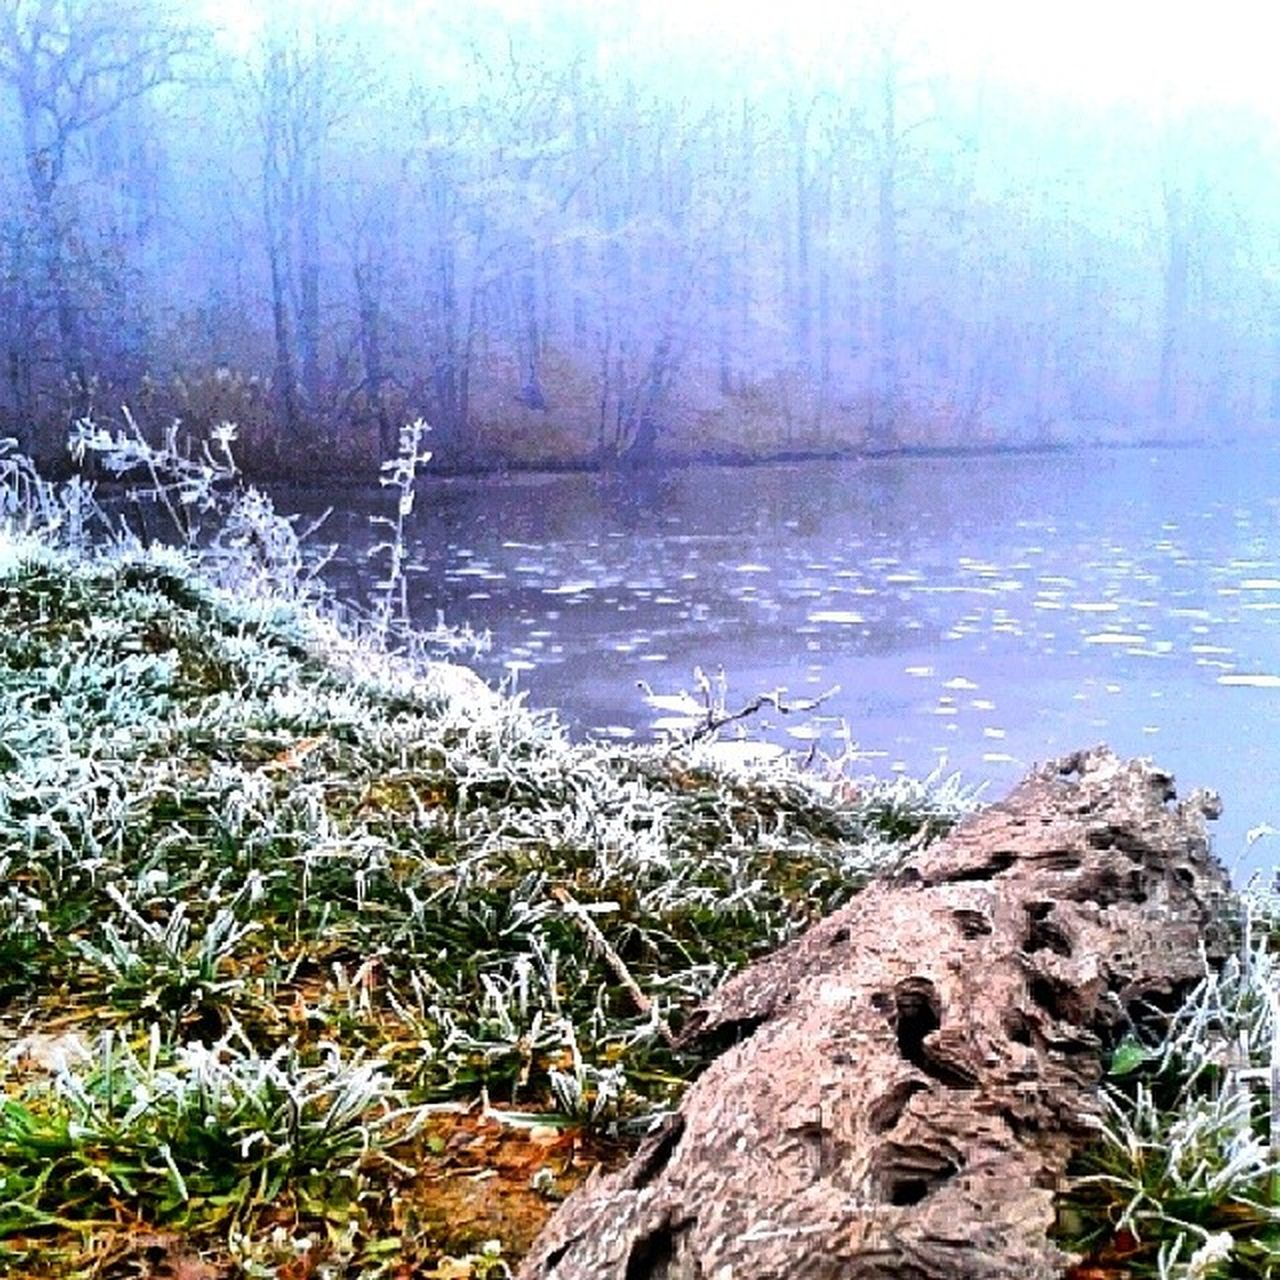 nature, tree, tranquility, tranquil scene, lake, water, beauty in nature, no people, outdoors, grass, growth, landscape, day, rock - object, plant, forest, scenics, tree trunk, winter, cold temperature, dead tree, sky